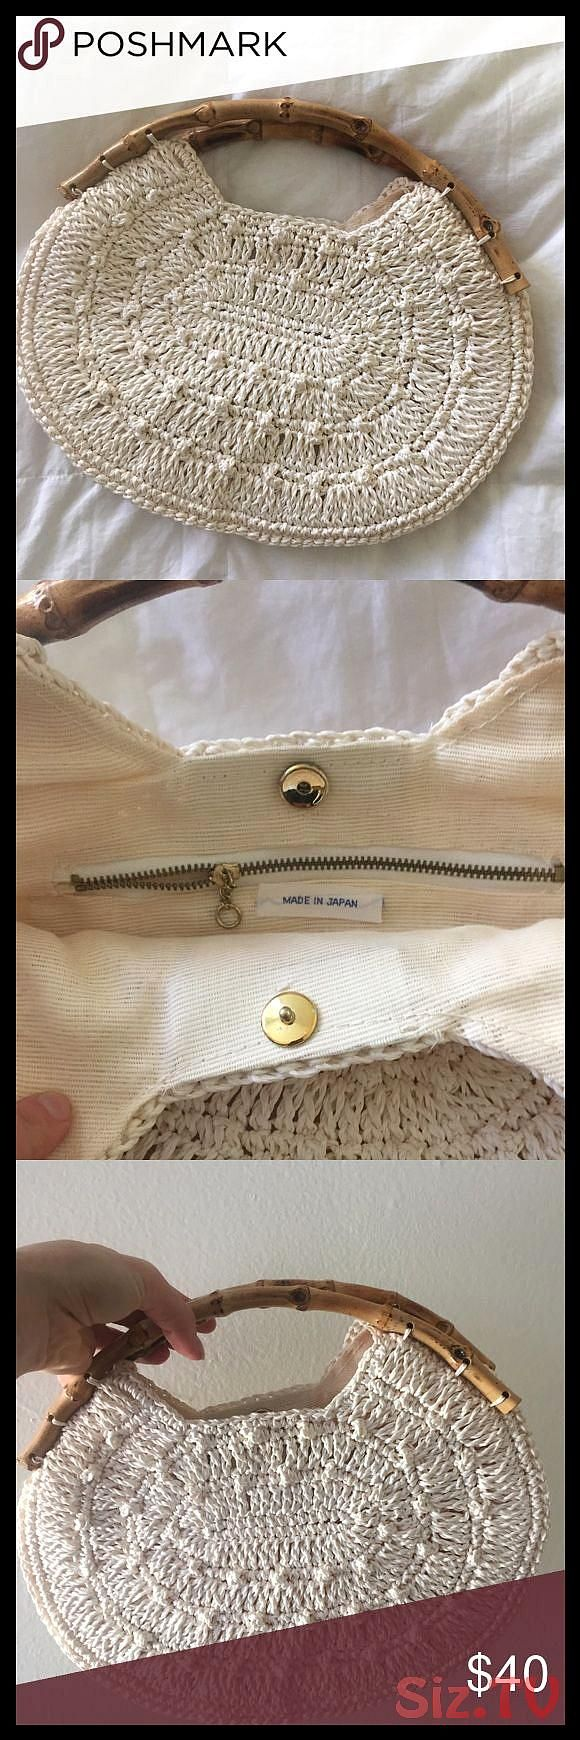 Vintage macramhandbag Vintage macramhandbag with bamboo handles Nice off white light cream color Lined with an inside zipper pocket Brass clVintage macramhandbag Vintage...